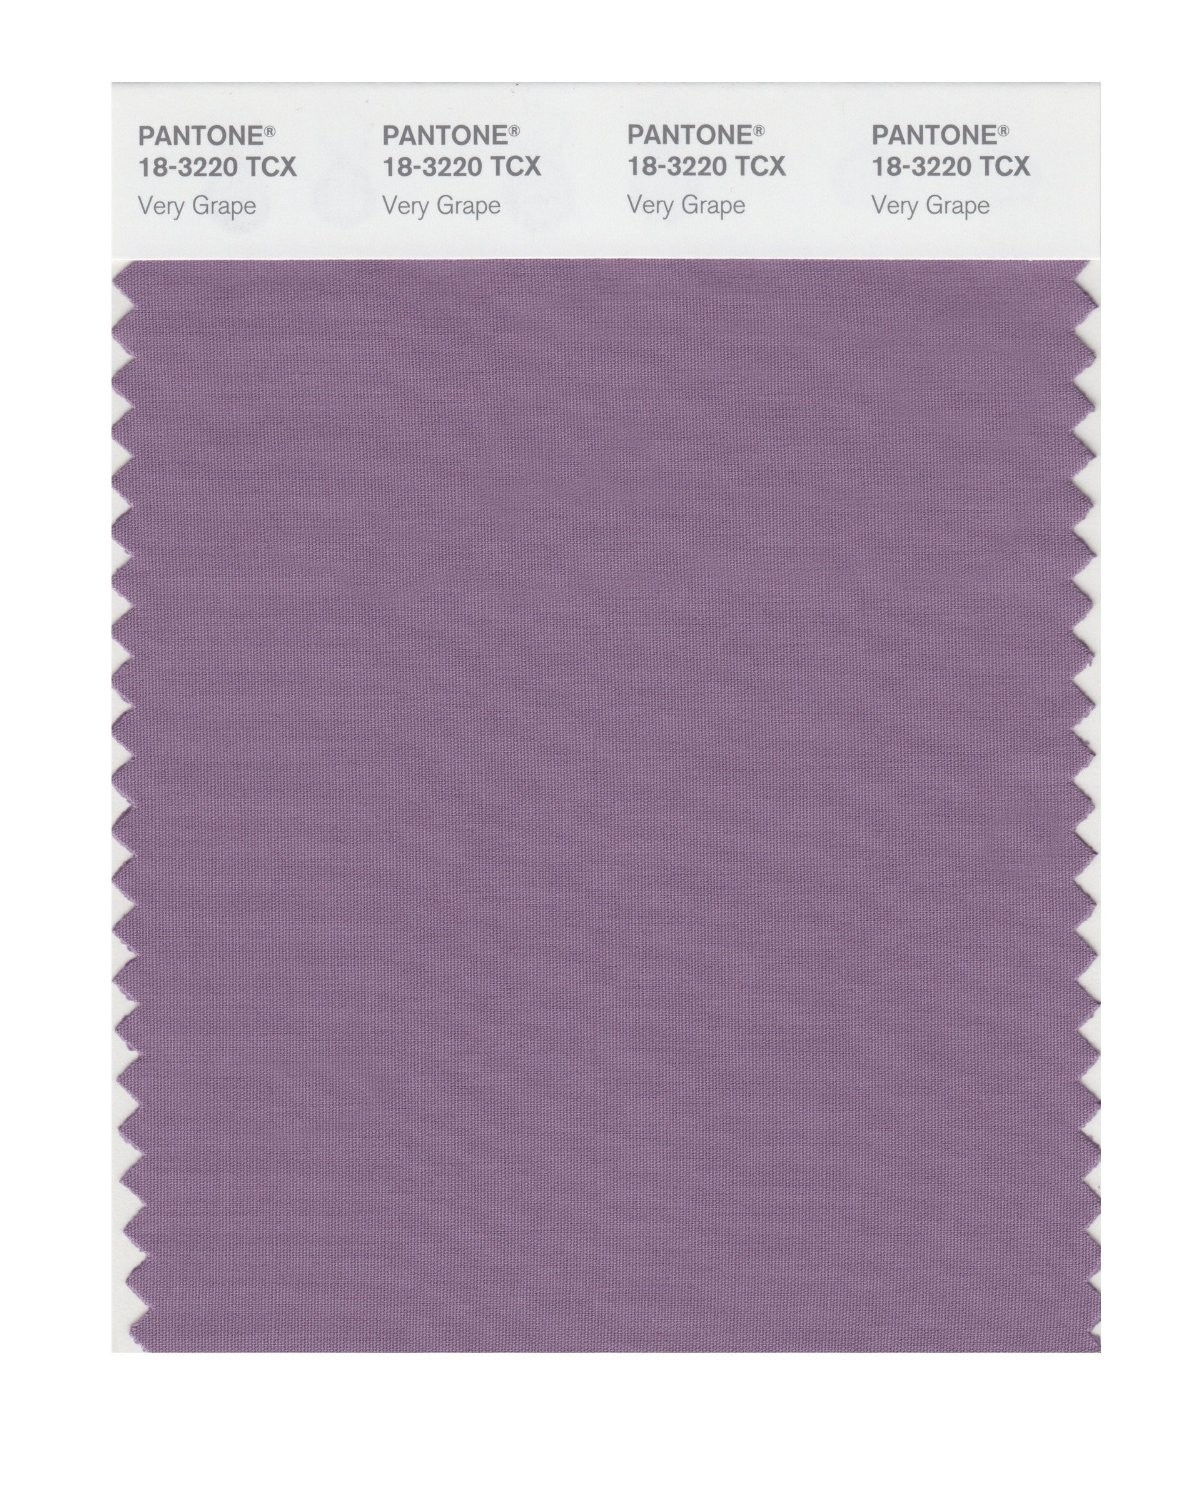 Pantone 18-3220 TCX Swatch Card Very Grape